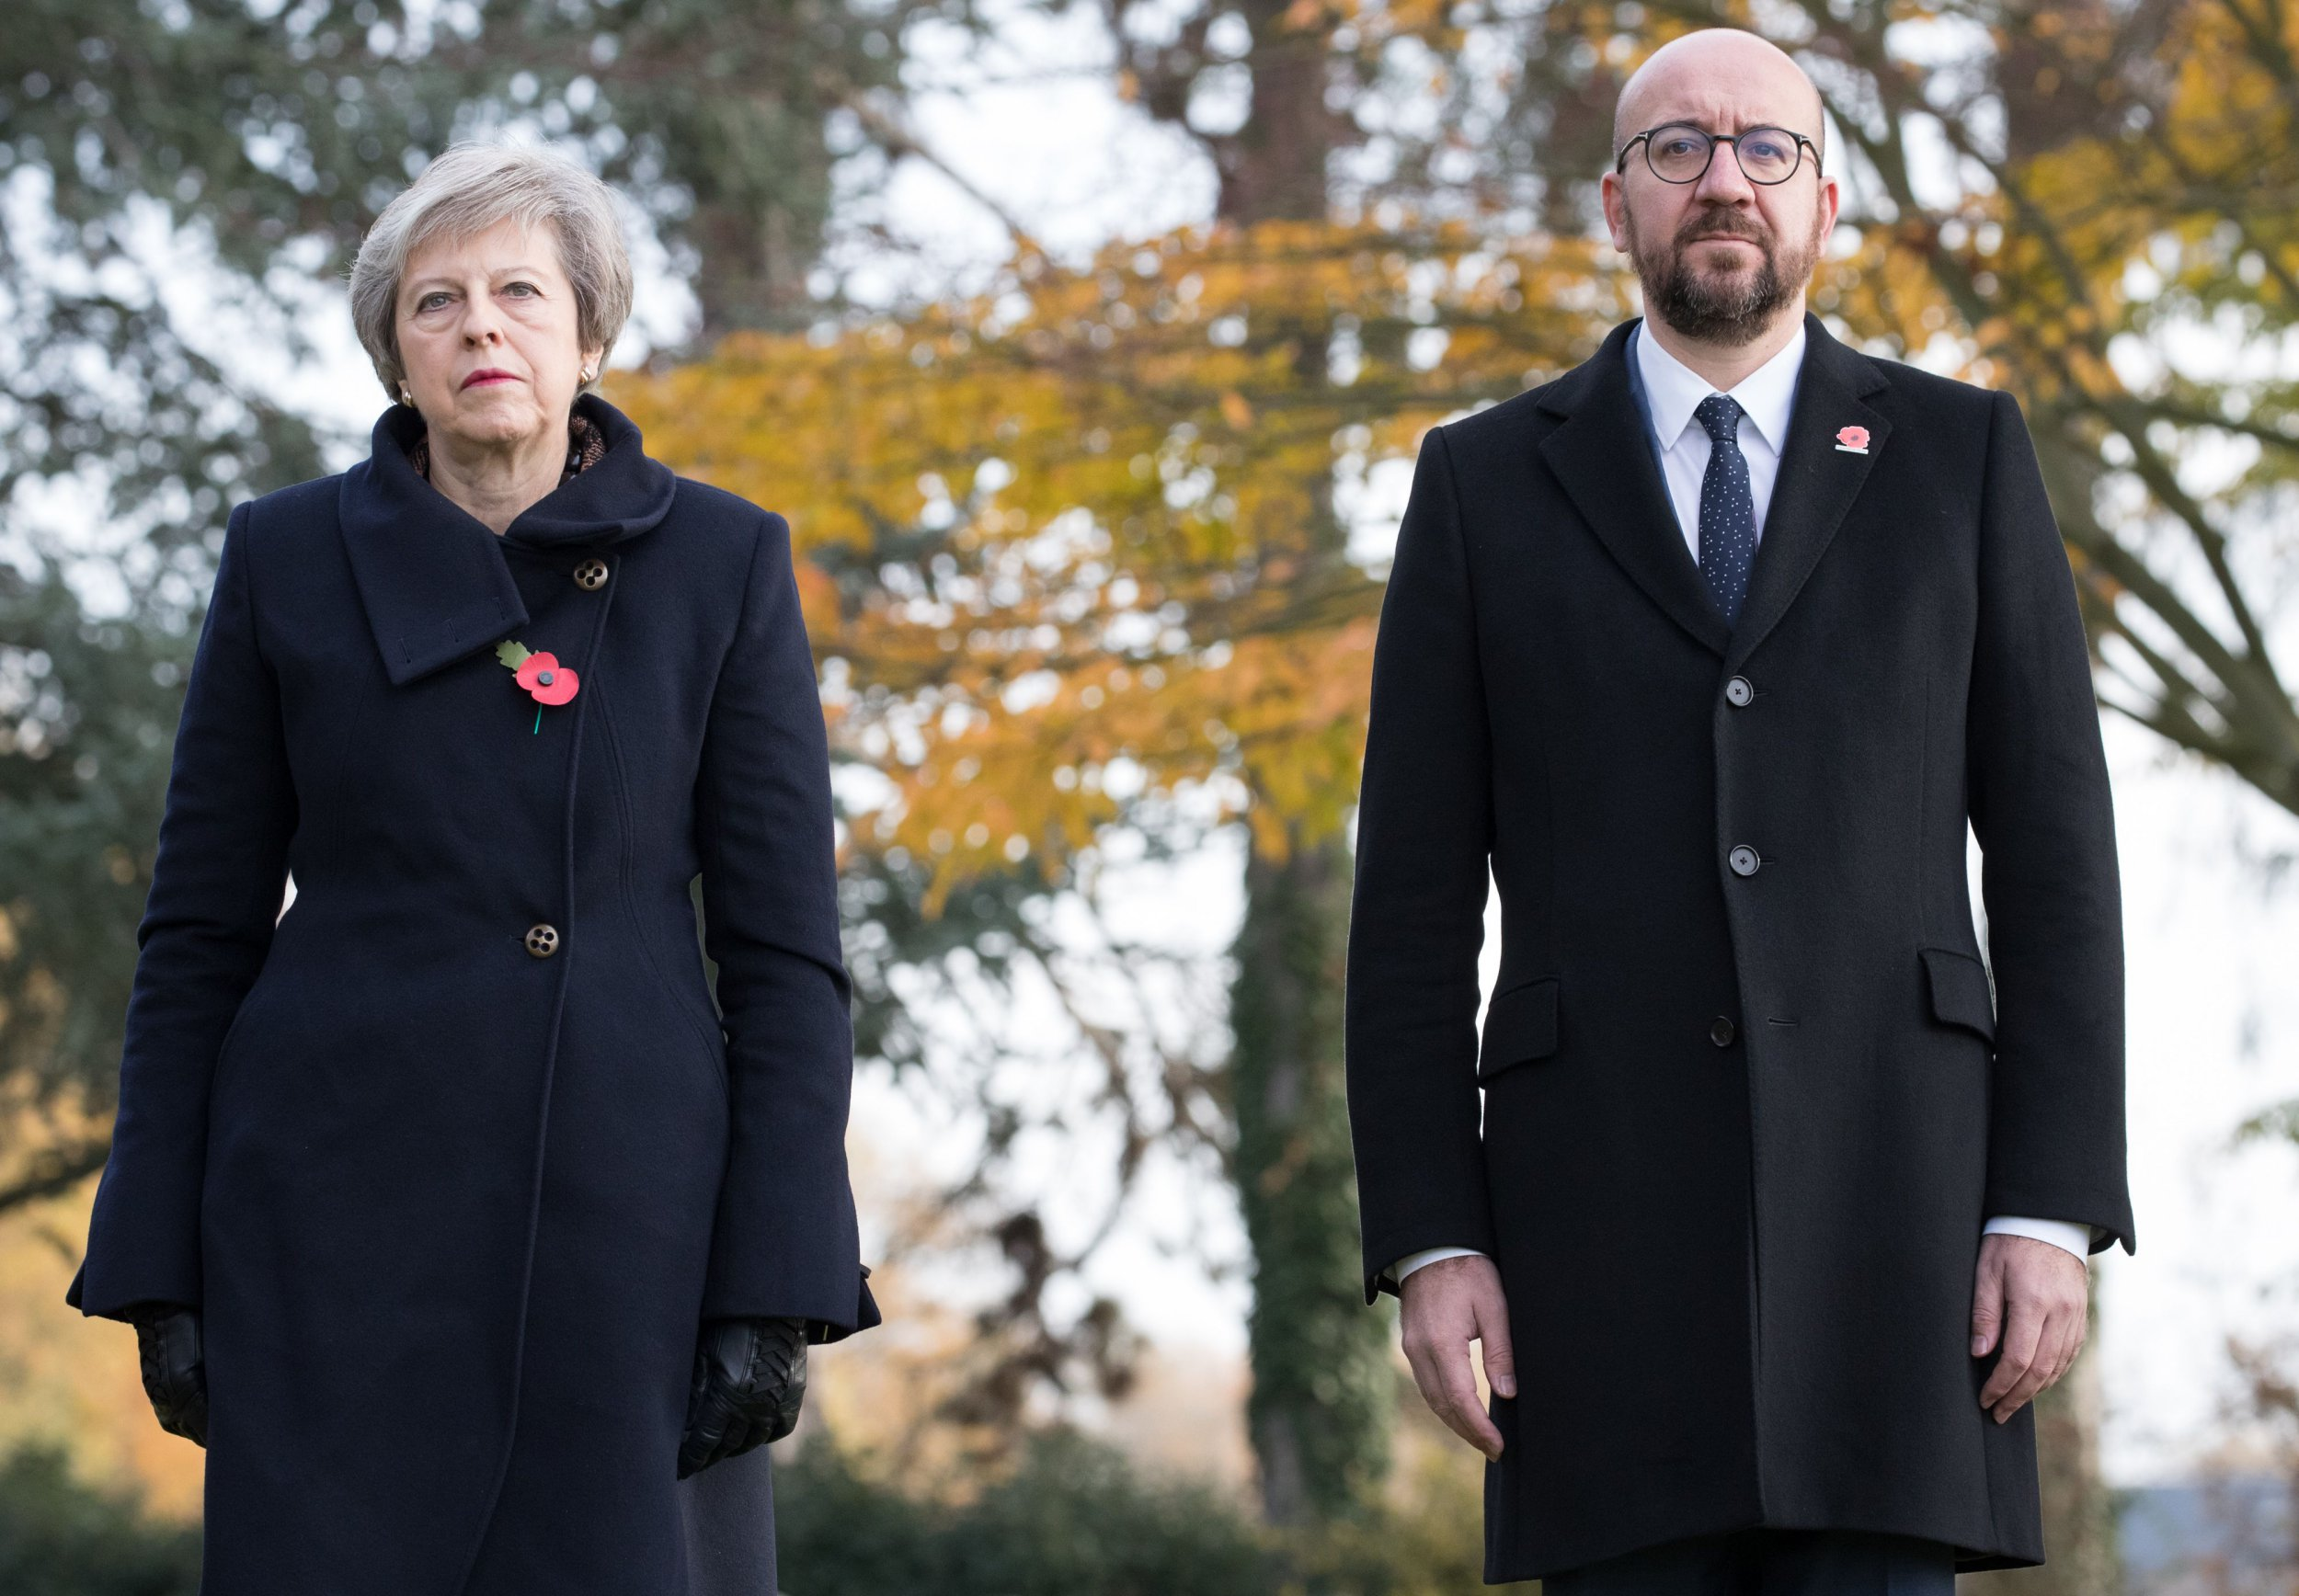 Britain's Prime Minister Theresa May (L) and Belgium's Prime Minister Charles Michel stand during the commemoration of the 100th anniversary of the end of the First World War at the Saint-Symphorien Military Cemetery, near Mons, on November 9, 2018. (Photo by BENOIT DOPPAGNE / Belga / AFP) / Belgium OUTBENOIT DOPPAGNE/AFP/Getty Images